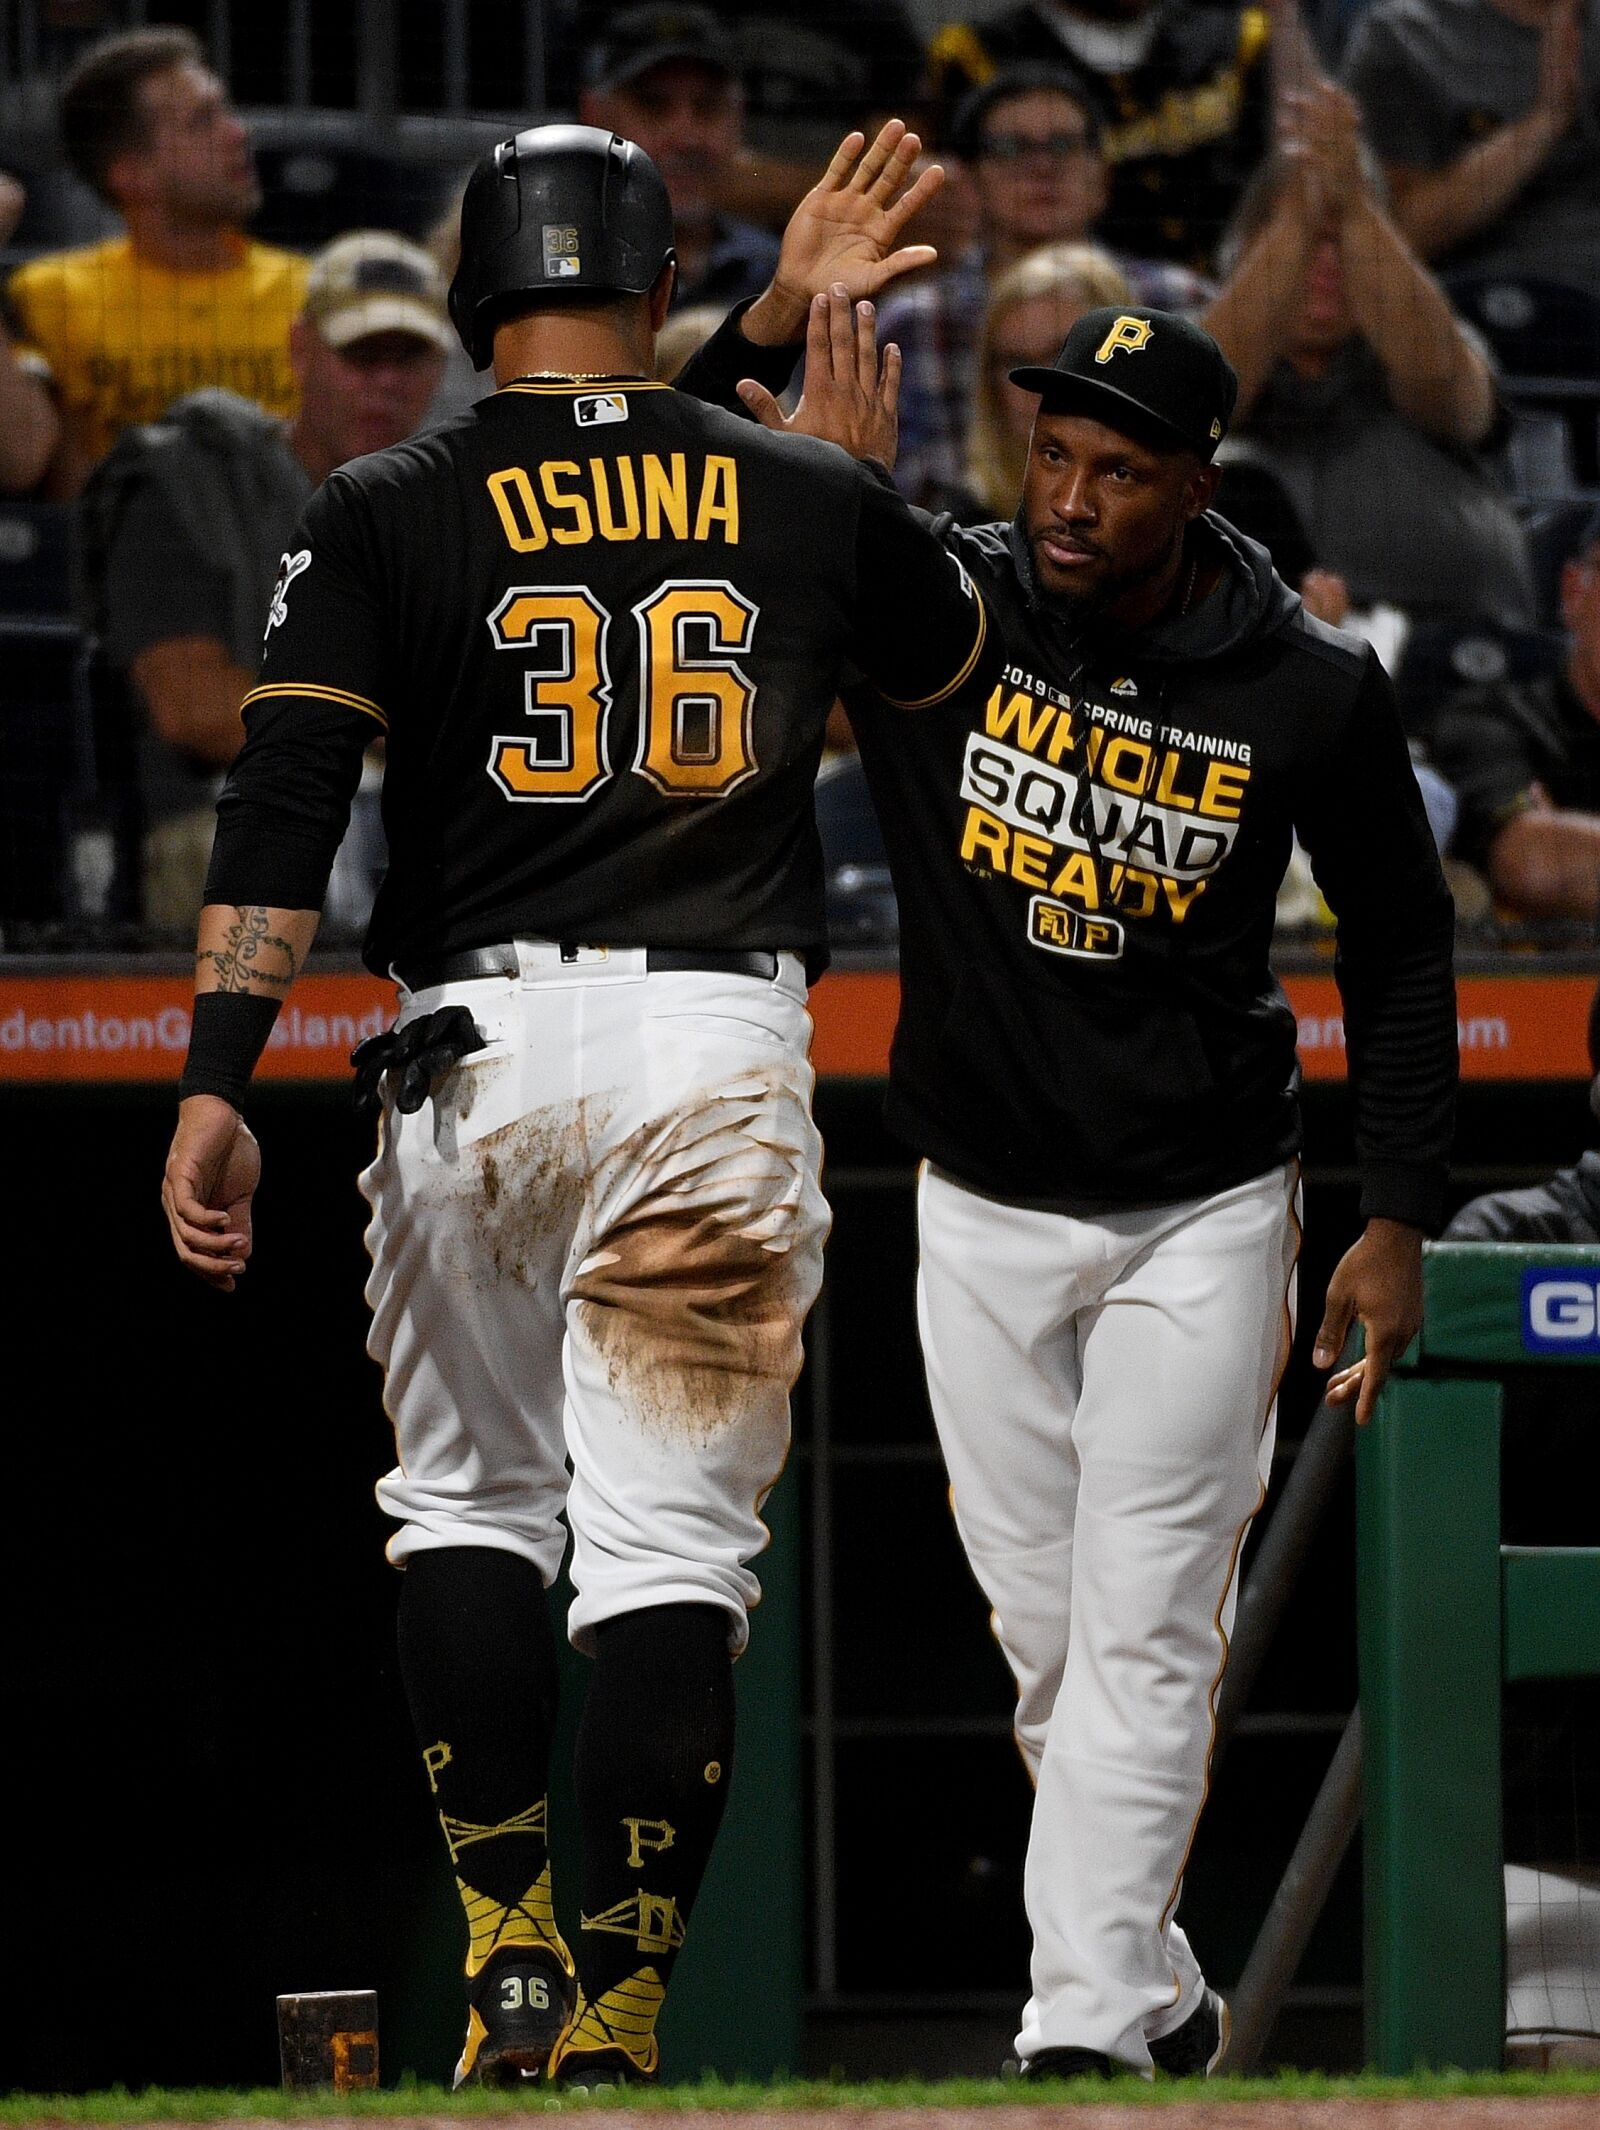 Pittsburgh Pirates Defeat Chicago Cubs 4-2